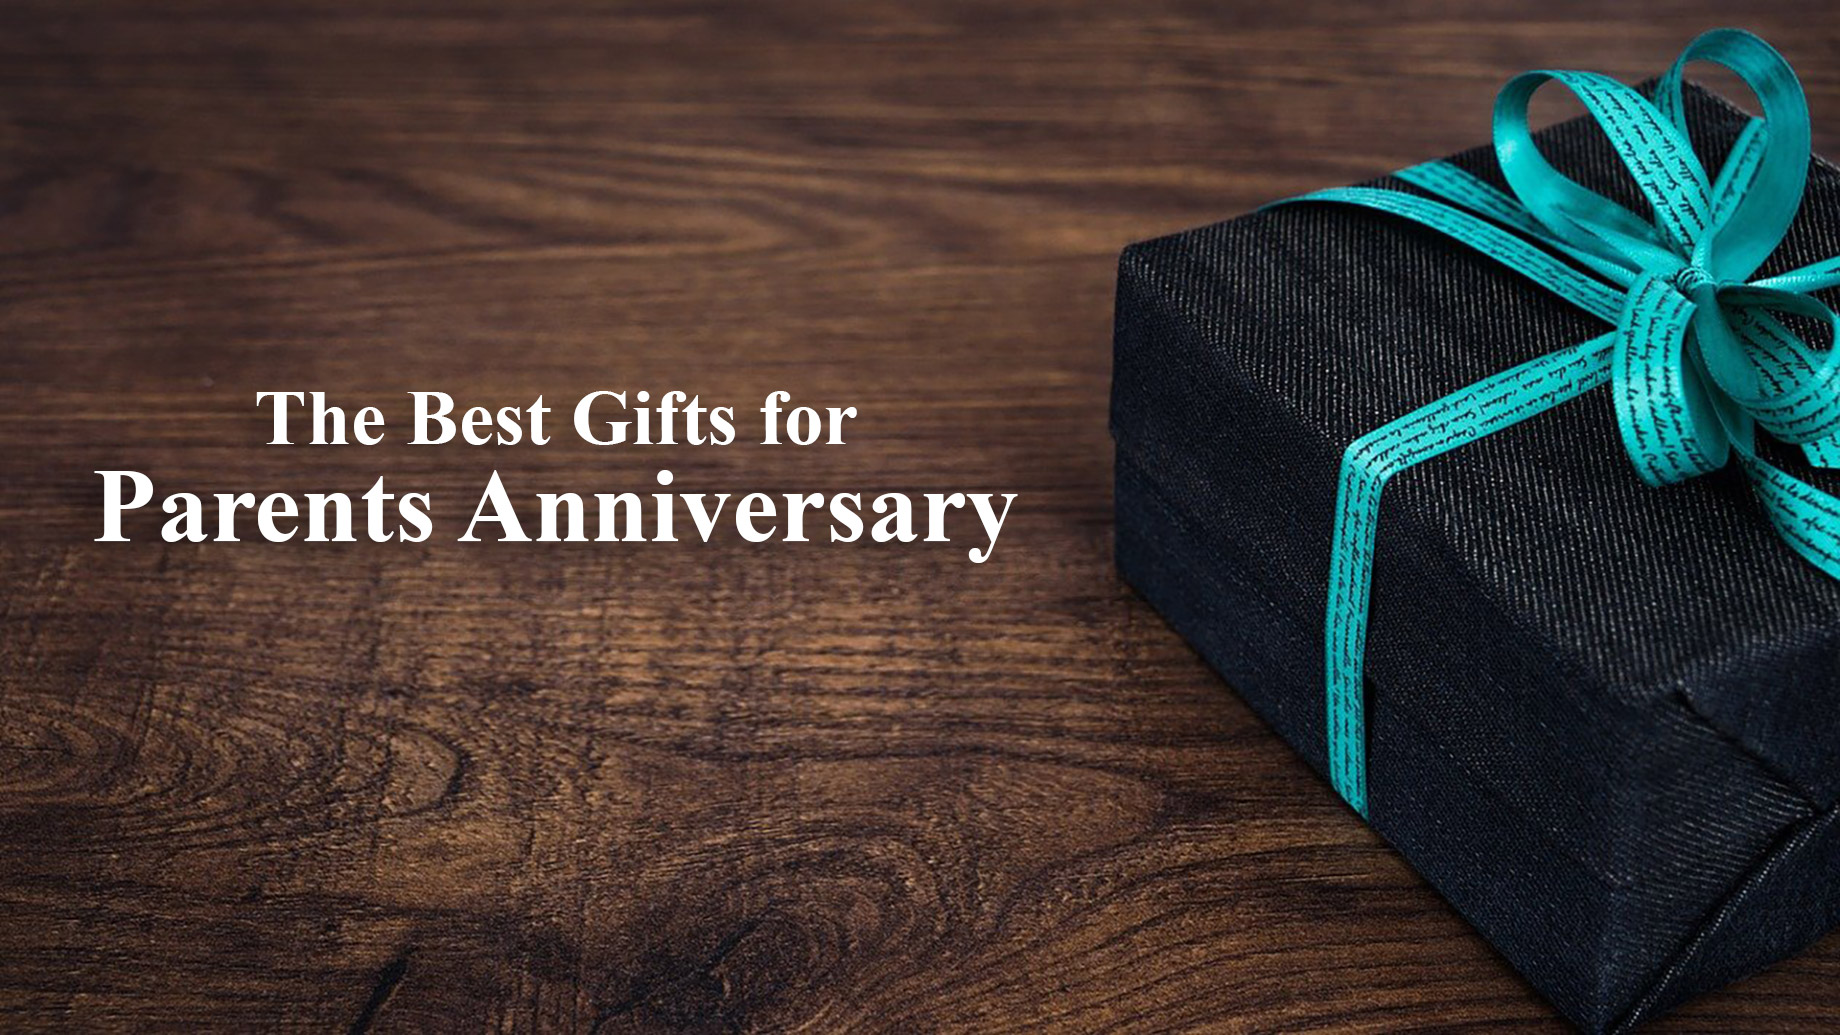 The Best Gifts for Parents Anniversary